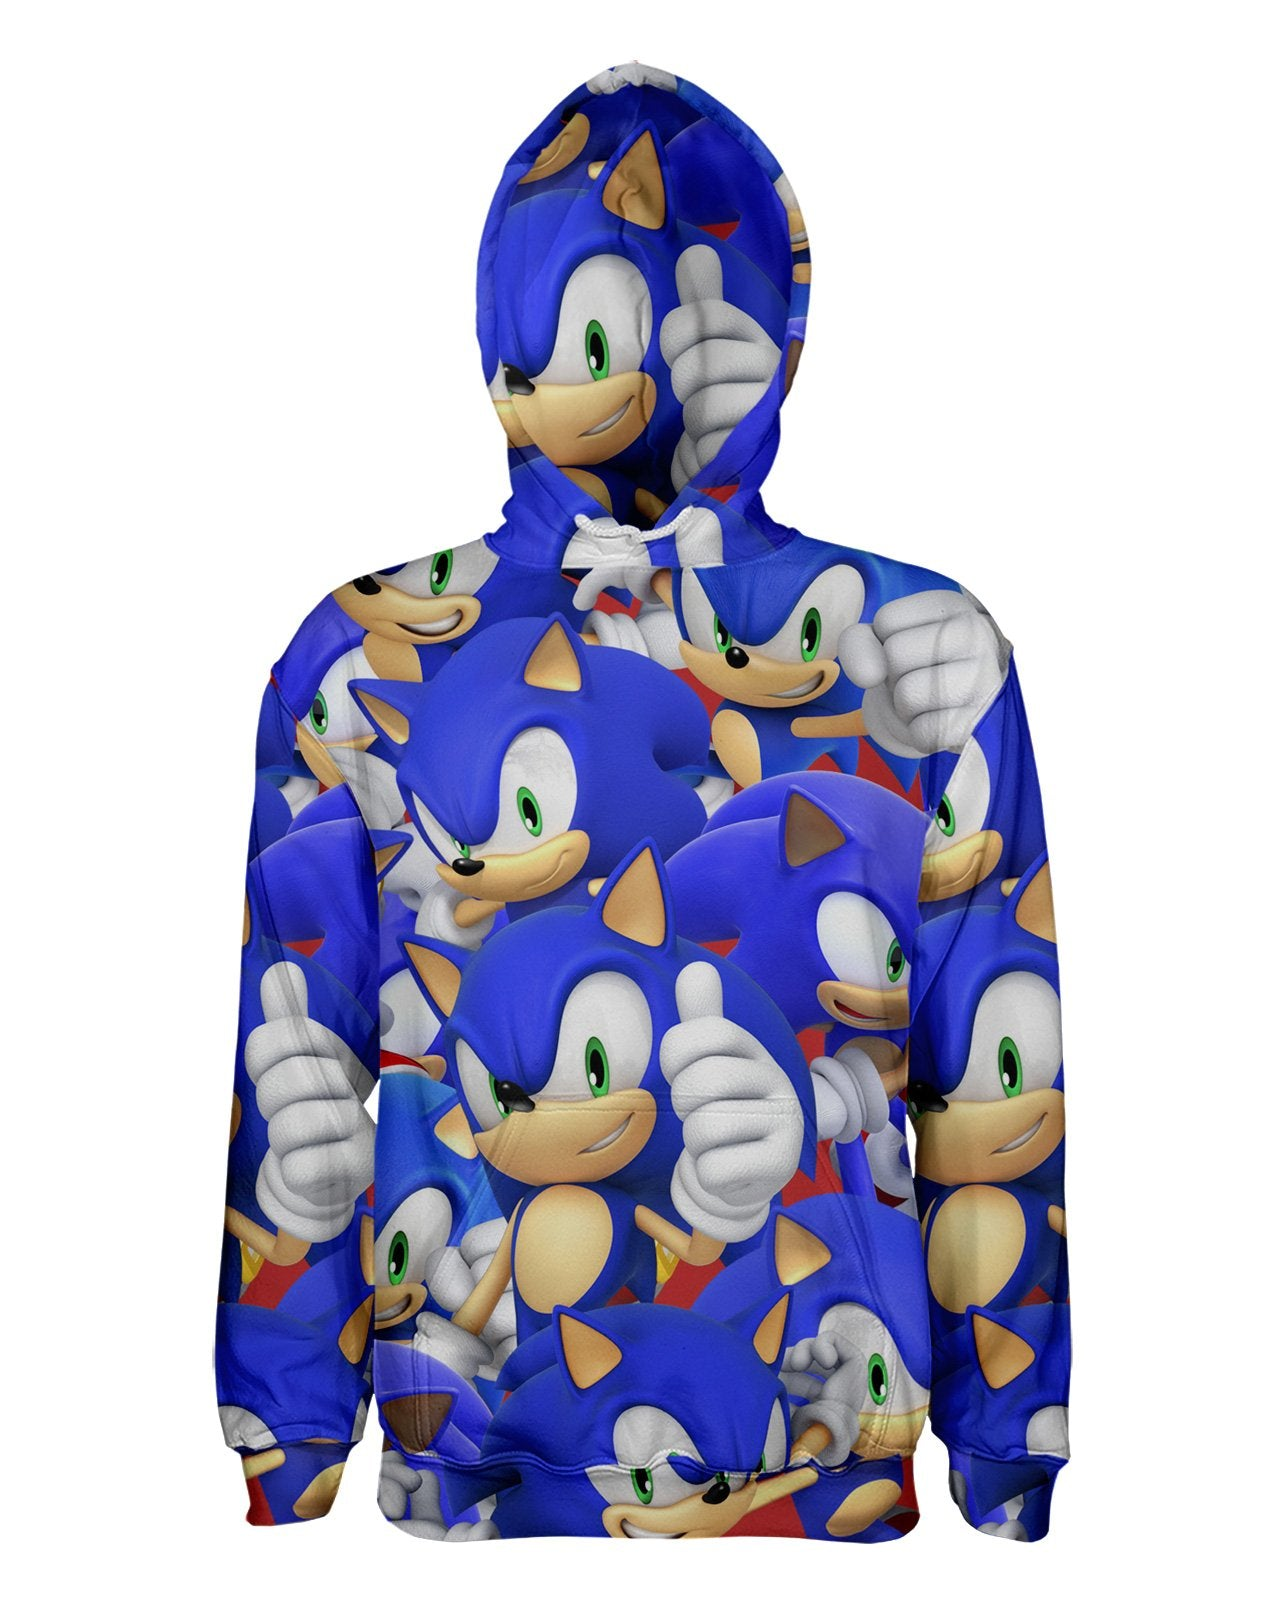 Sonic Super Smash Bros Pullover Hoodie